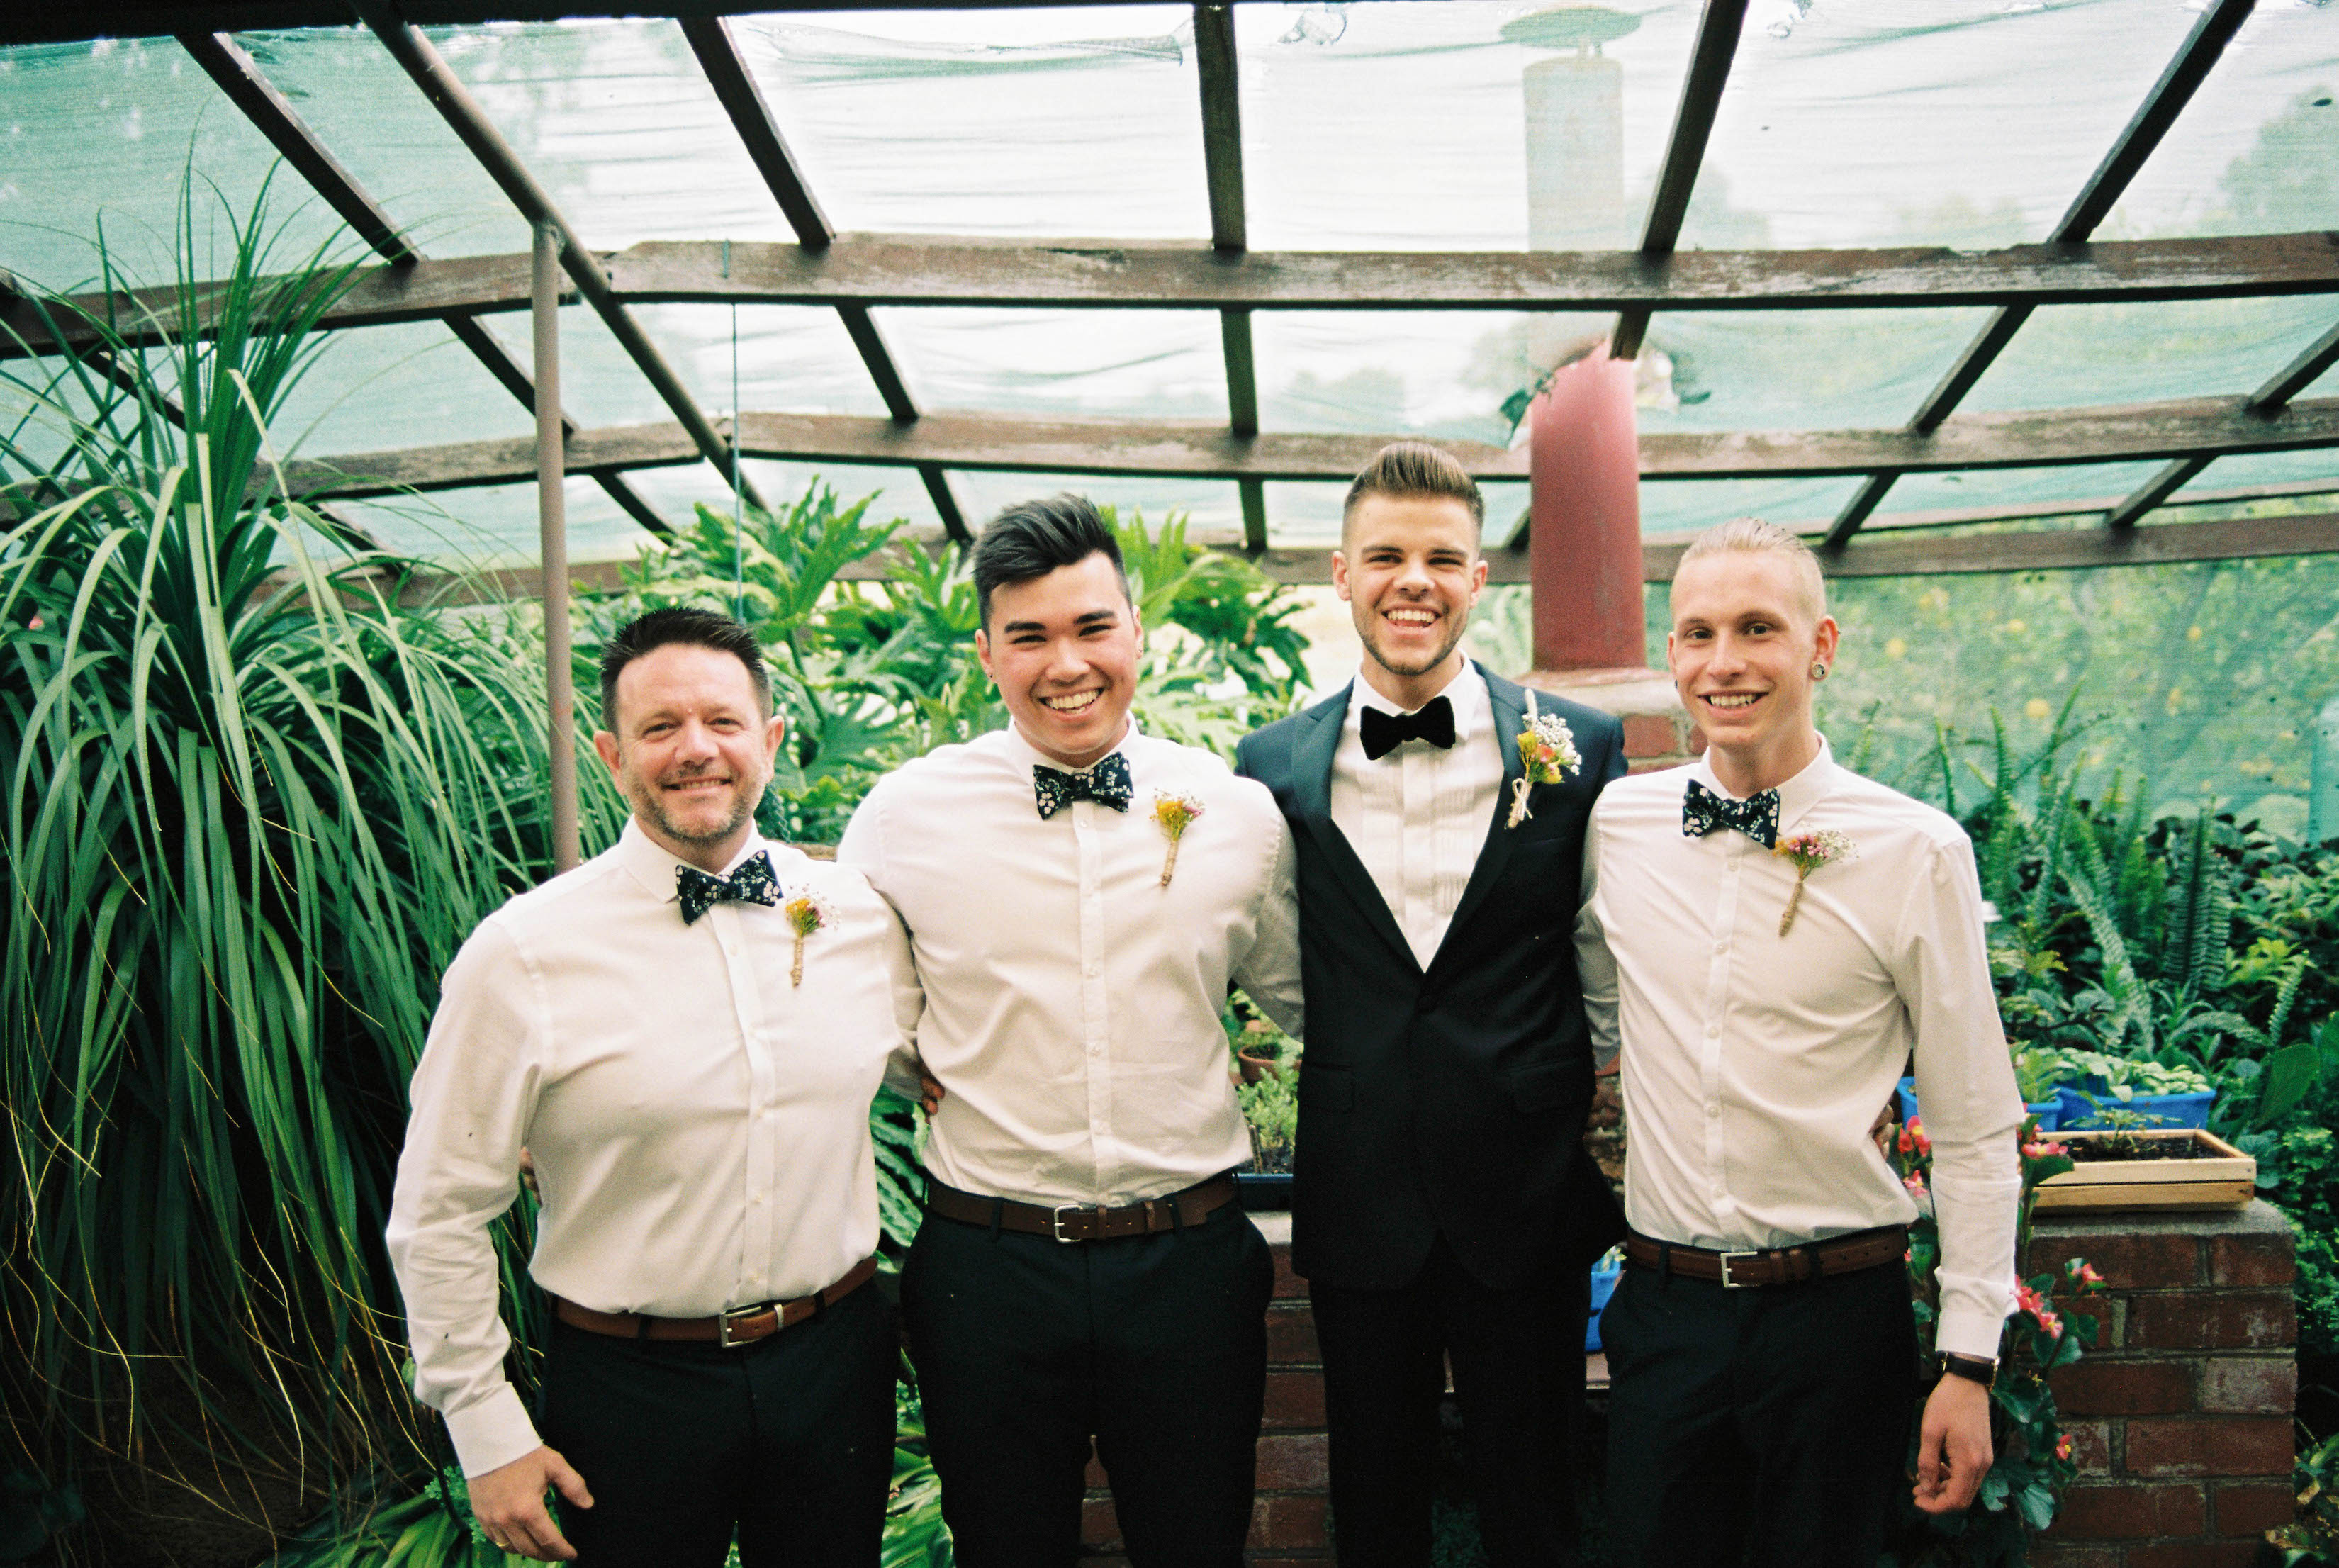 A photo of the groom and his groomsmen before his Down South Farm House Wedding Ceremony taken on film